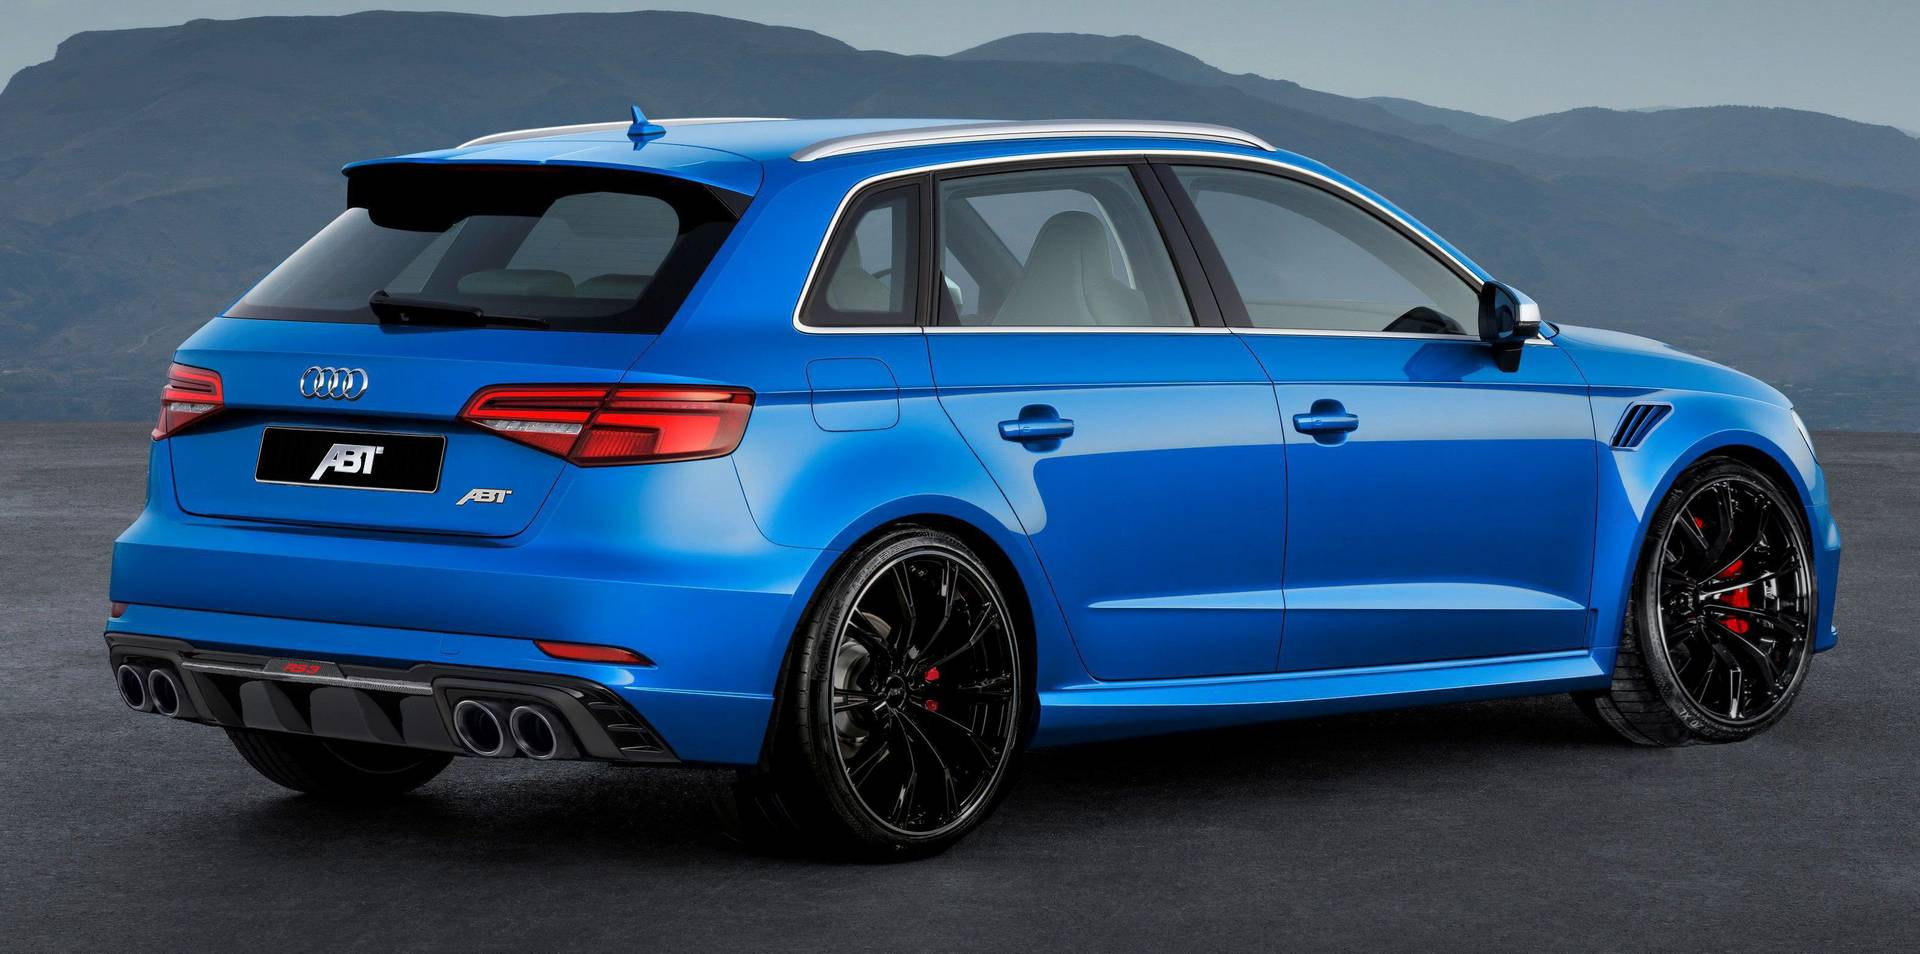 official abt audi rs3 with 460hp gtspirit. Black Bedroom Furniture Sets. Home Design Ideas